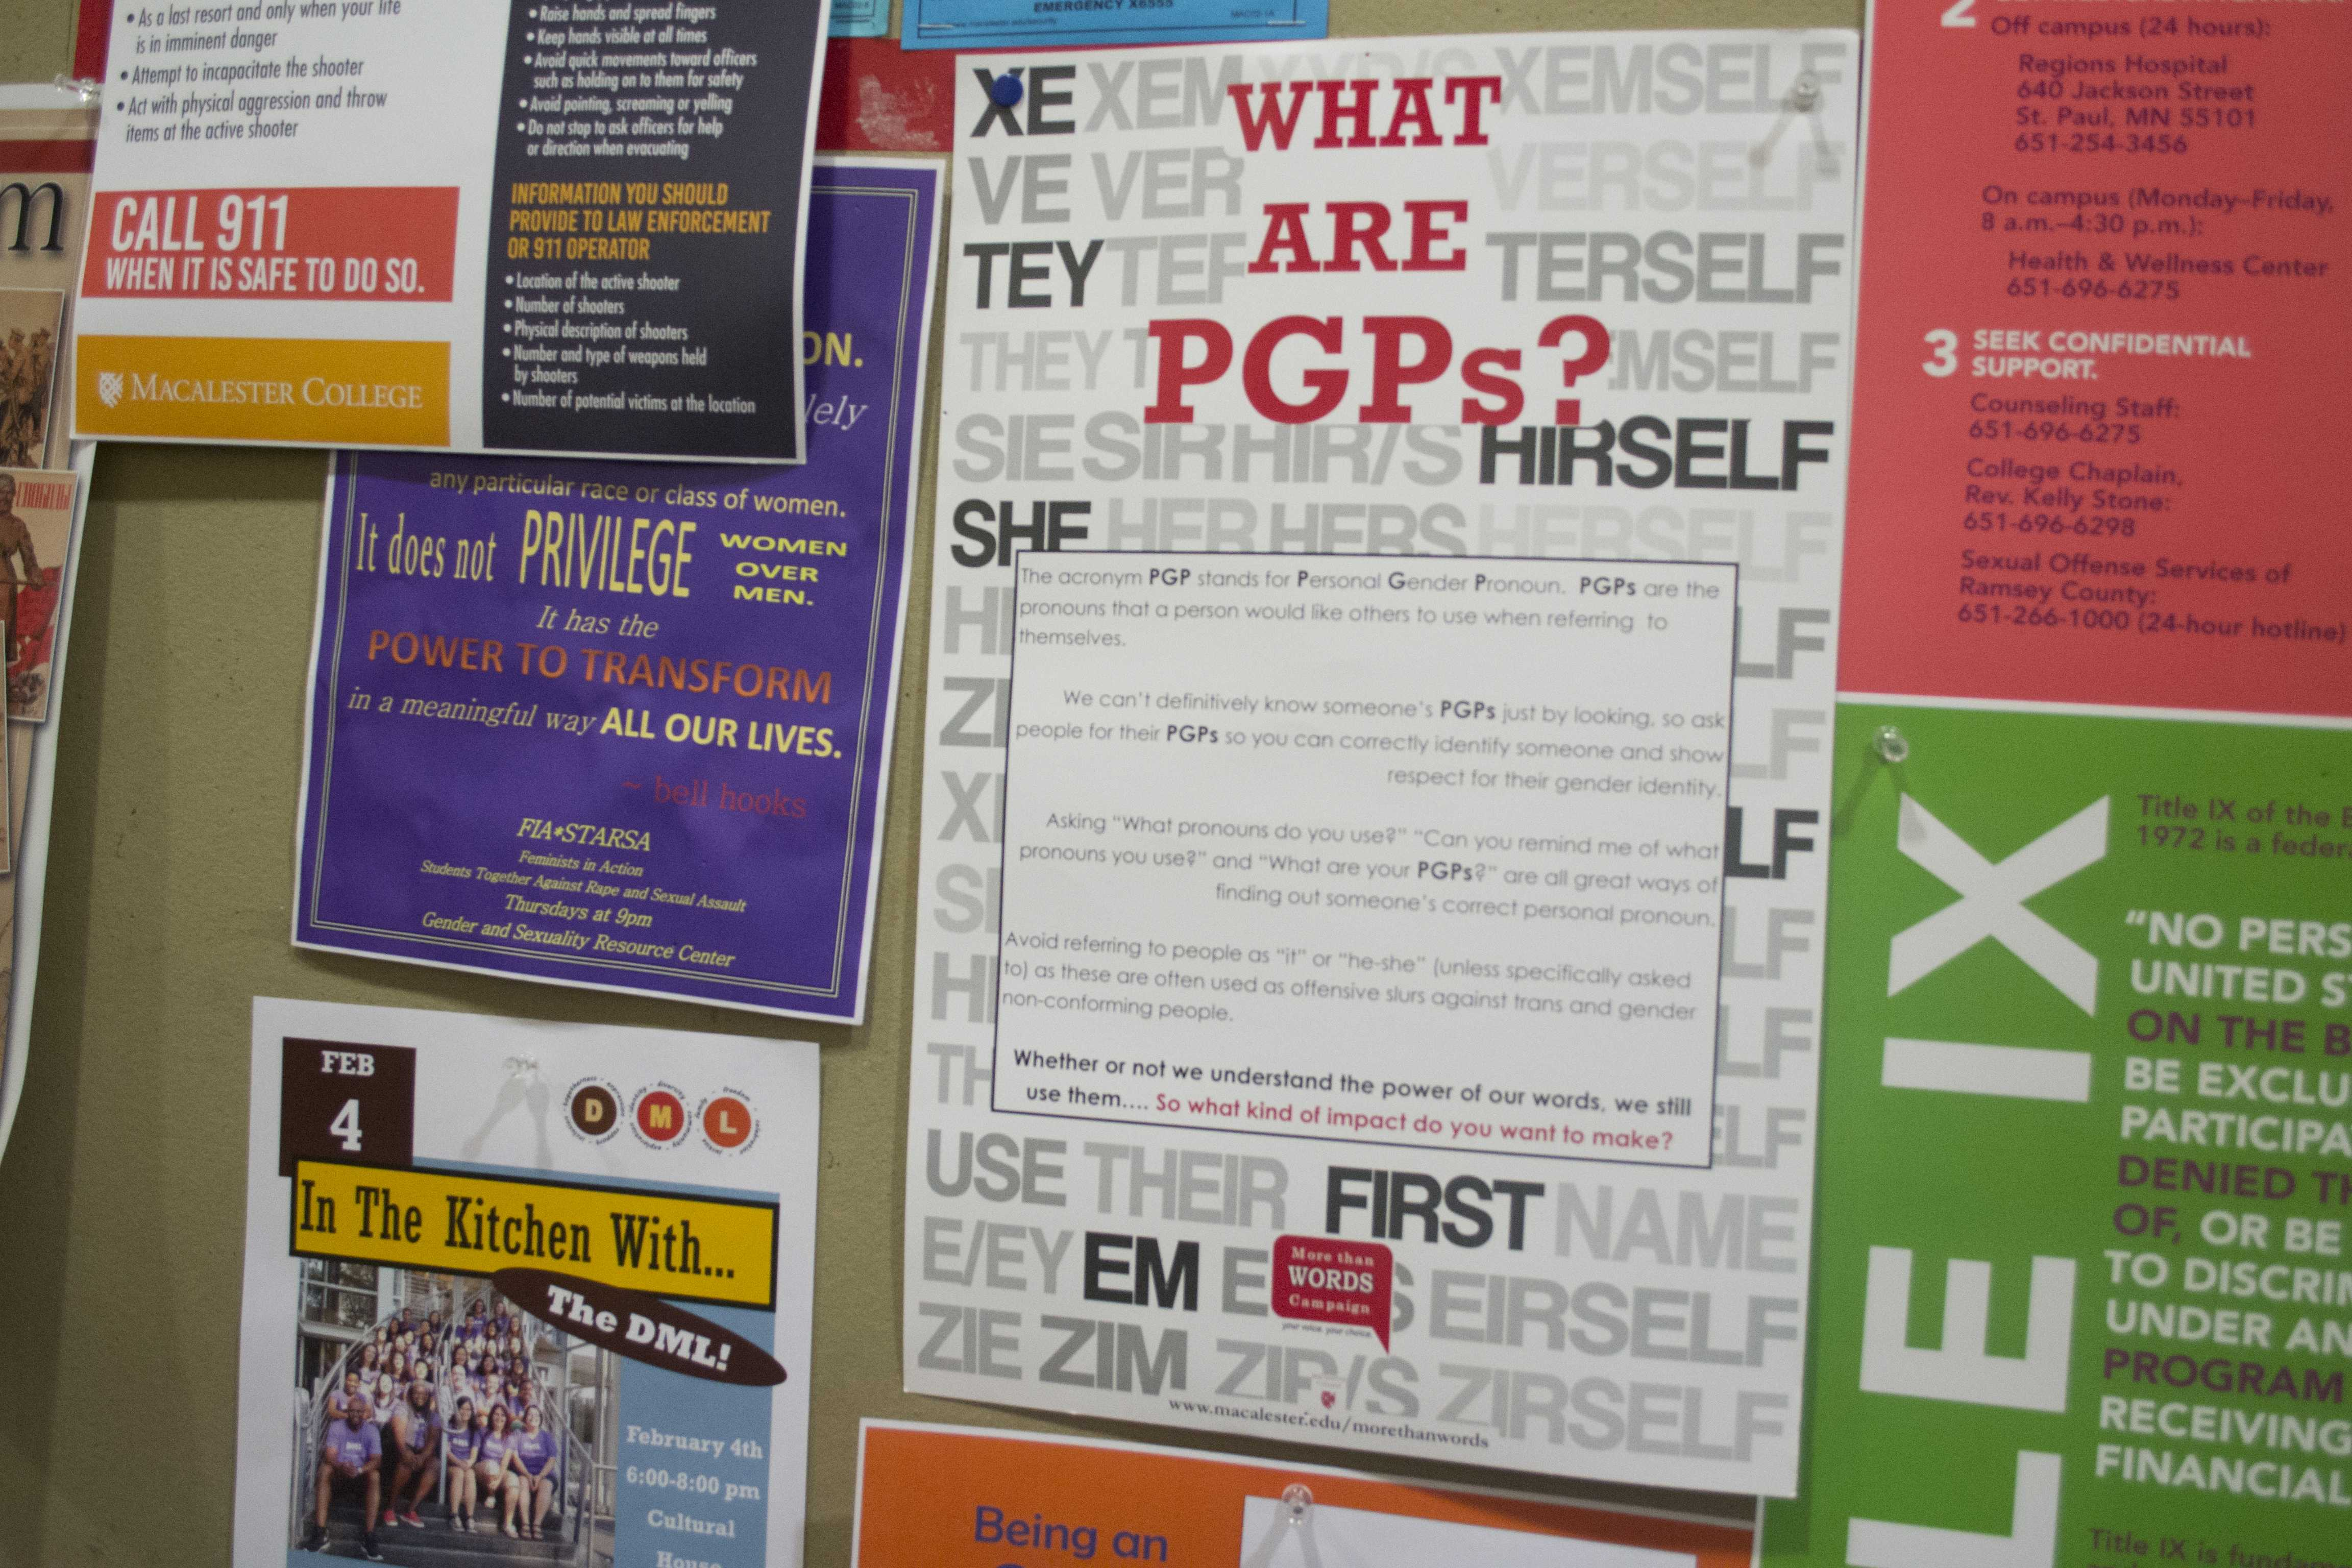 Macalester has a number of informative posters on PGPs. Photo by Will Milch '19.